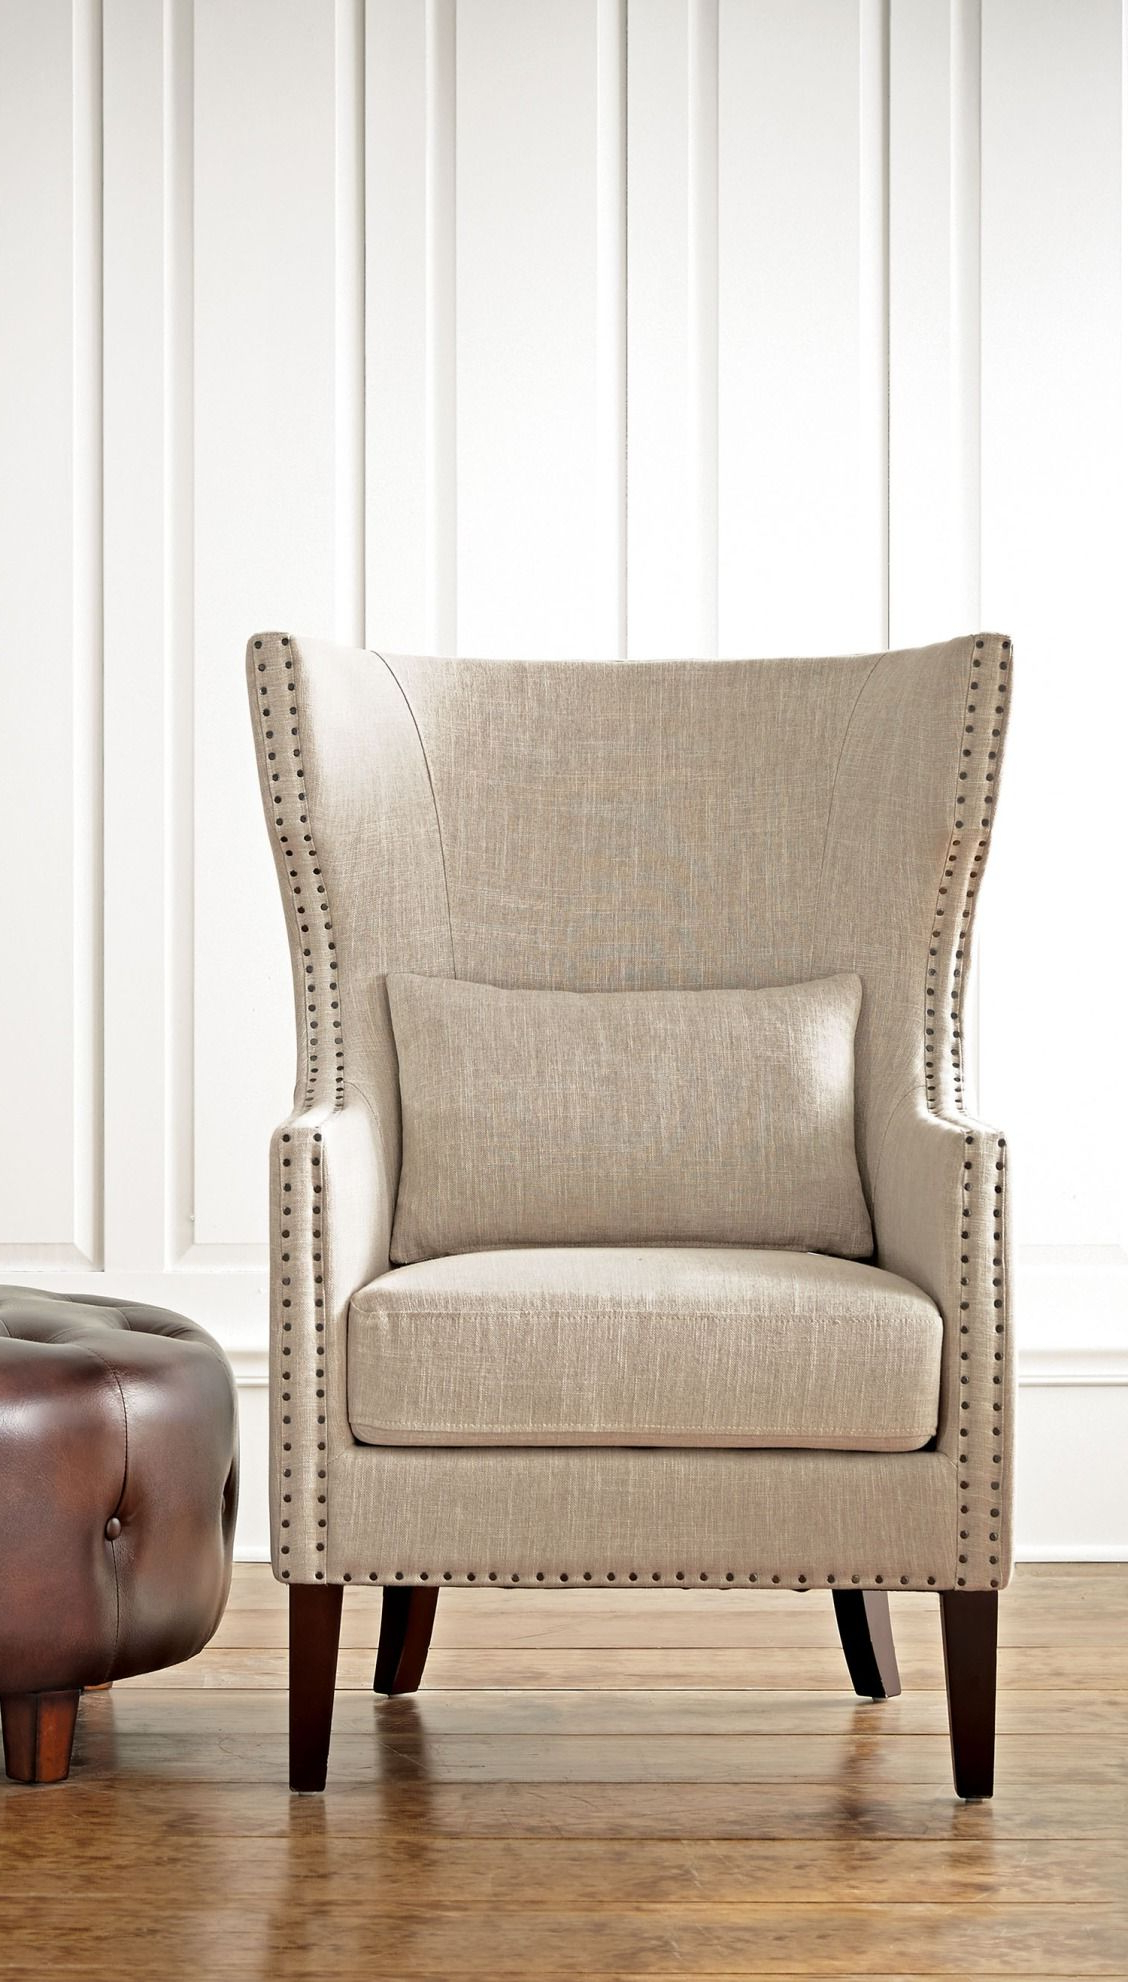 Preferred A Wingback Armchair That Really Makes A Statement, Yet Isn't In Busti Wingback Chairs (View 5 of 20)